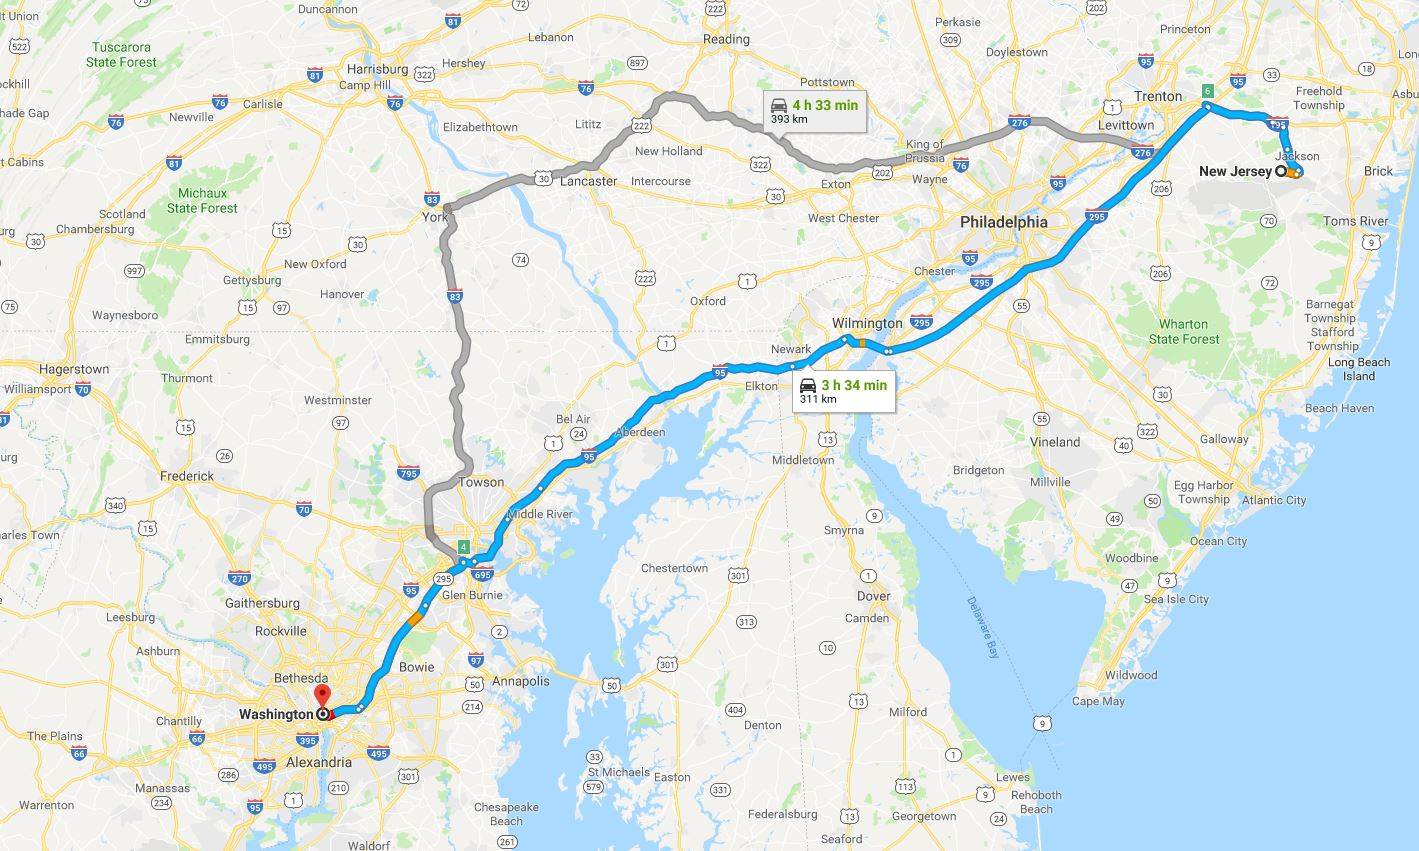 New Jersey to Washington DC, another amazing drive - approximately three hours 40 minutes